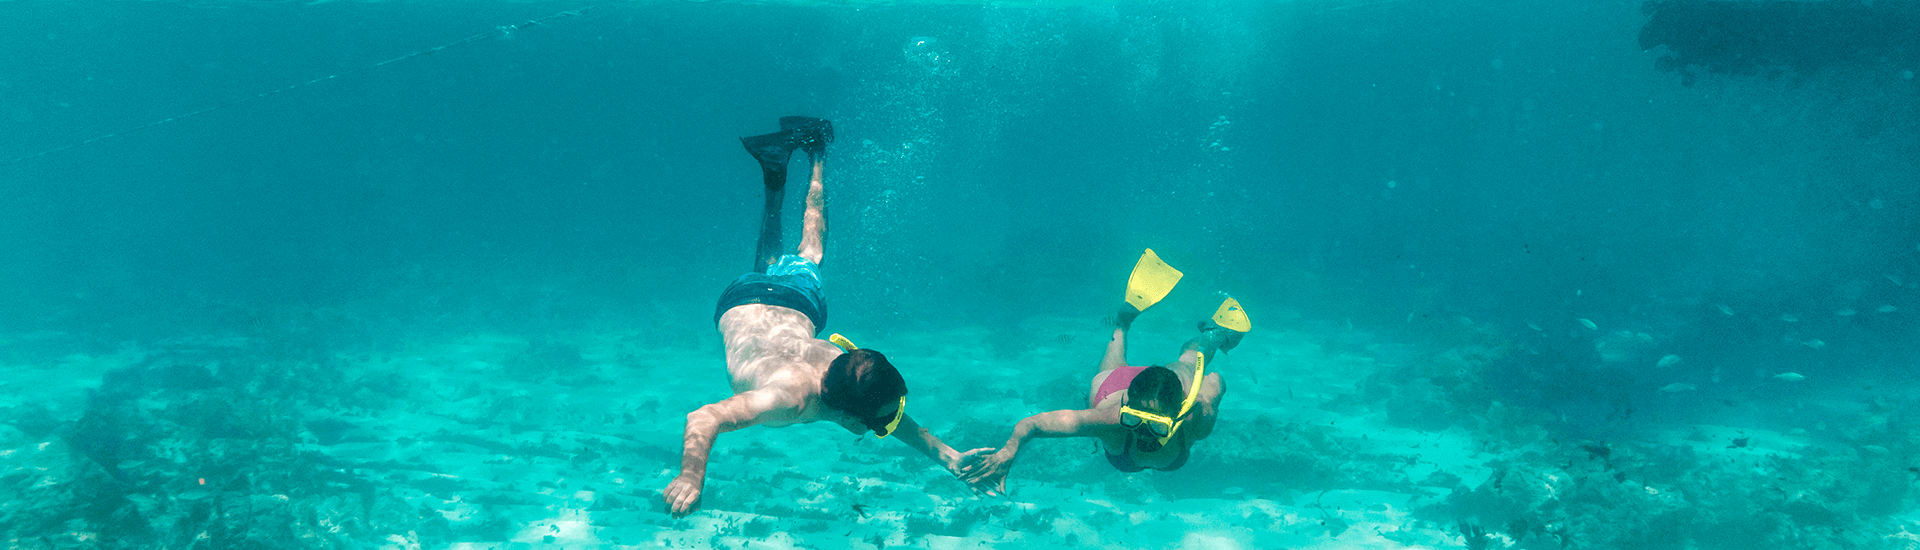 You can discover some of Aruba's best snorkel sites right from the beach or take a boat trip to make it a full day of fun that includes snorkeling, beach time and an island BBQ when you stay at Divi Resort.